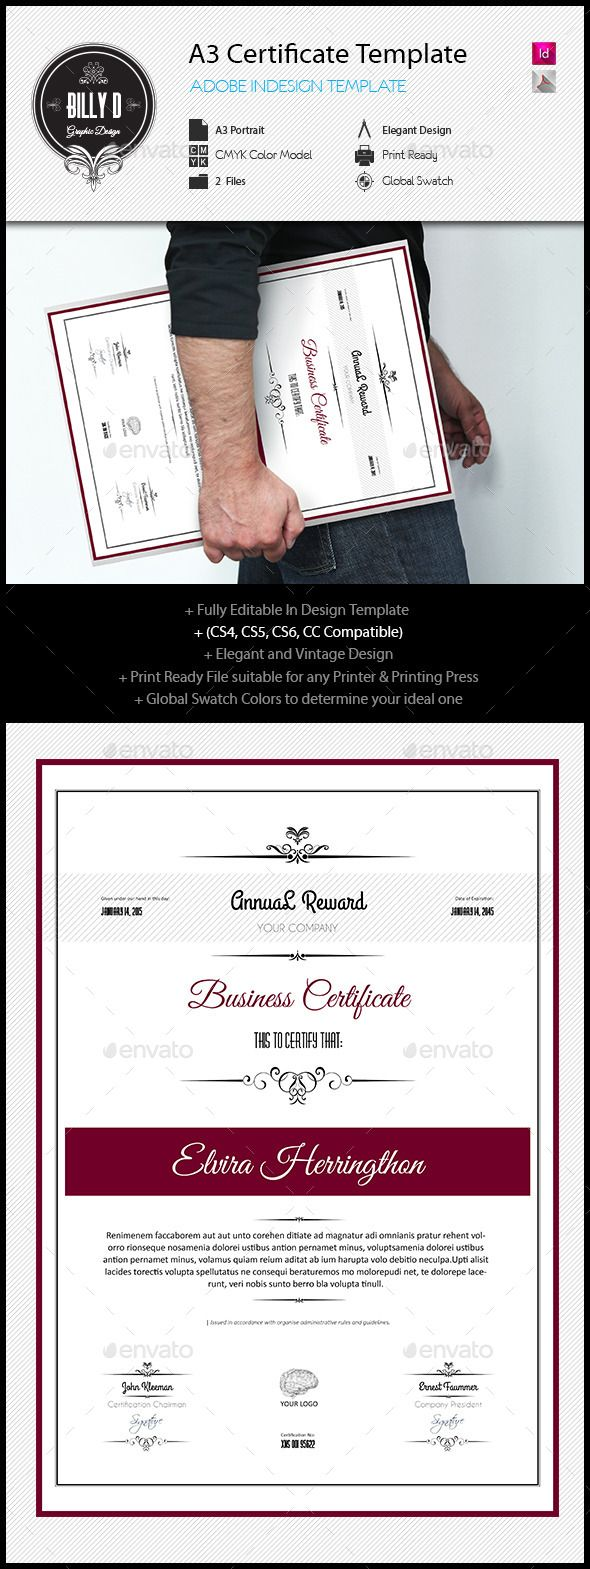 16 best certificates and awards images on Pinterest | Certificate ...